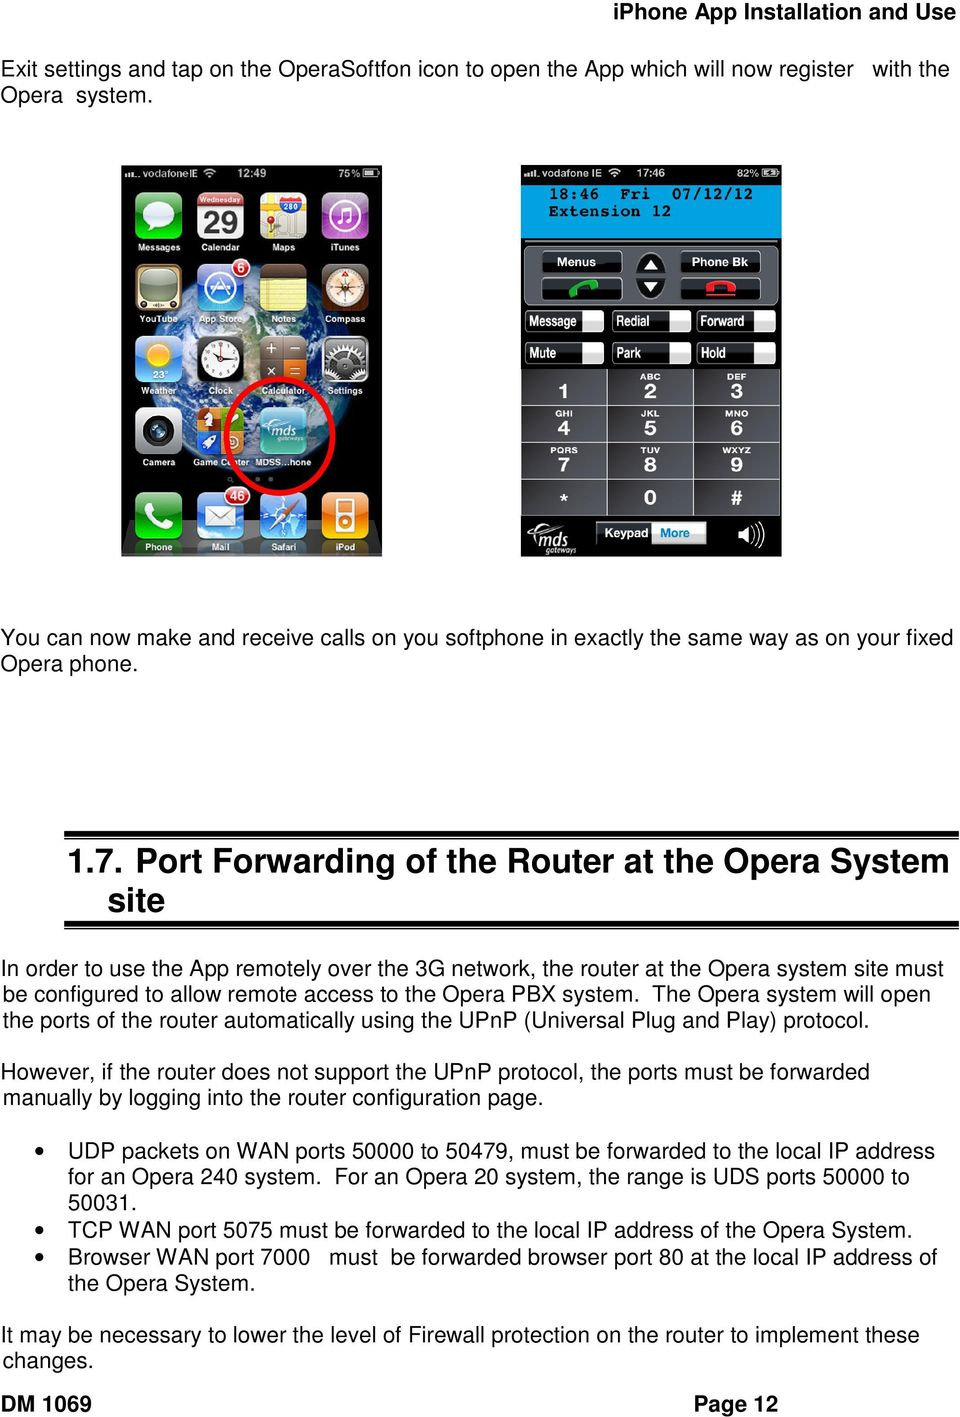 Port Forwarding of the Router at the Opera System site In order to use the App remotely over the 3G network, the router at the Opera system site must be configured to allow remote access to the Opera